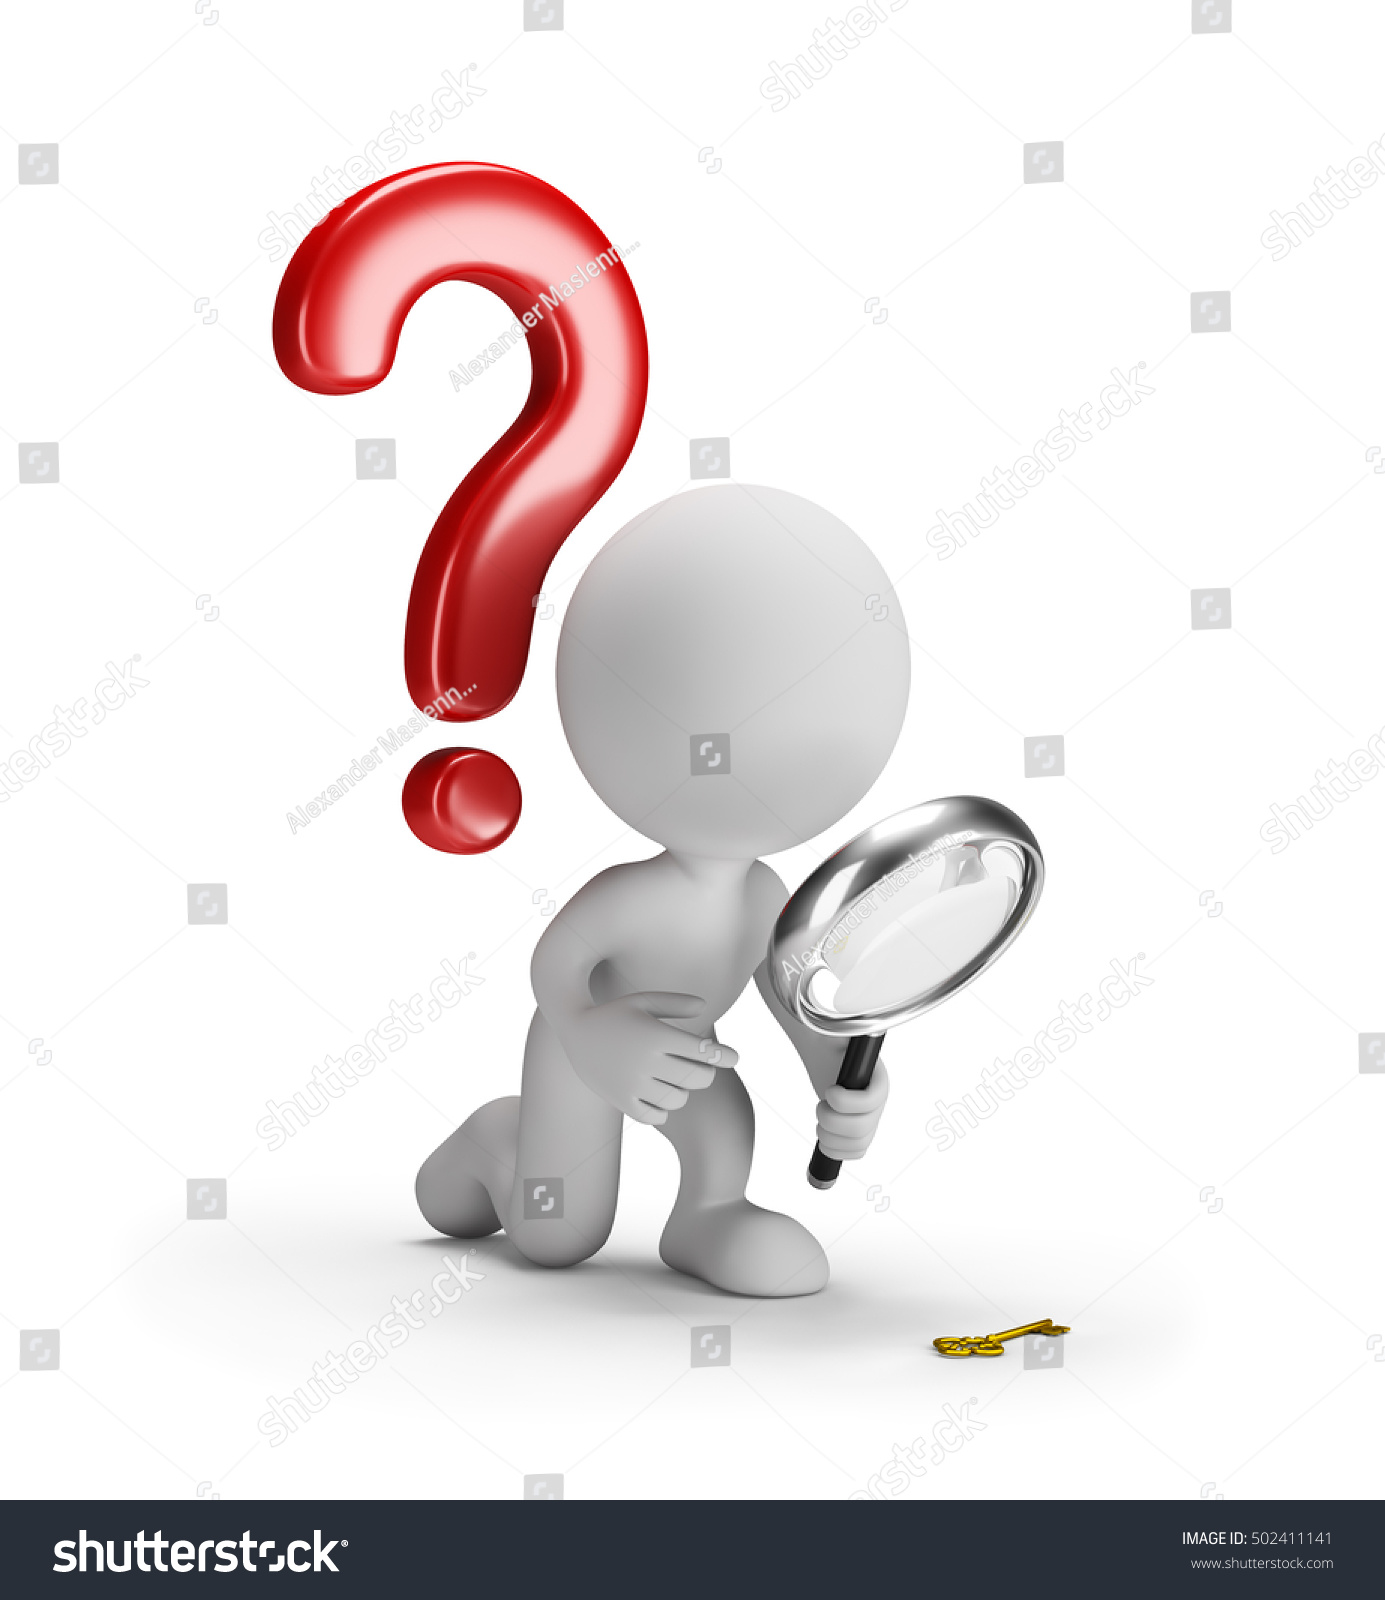 3d person with magnifying glass and question mark stock images image - 3d Man With A Magnifying Glass And A Question Mark 3d Image White Background